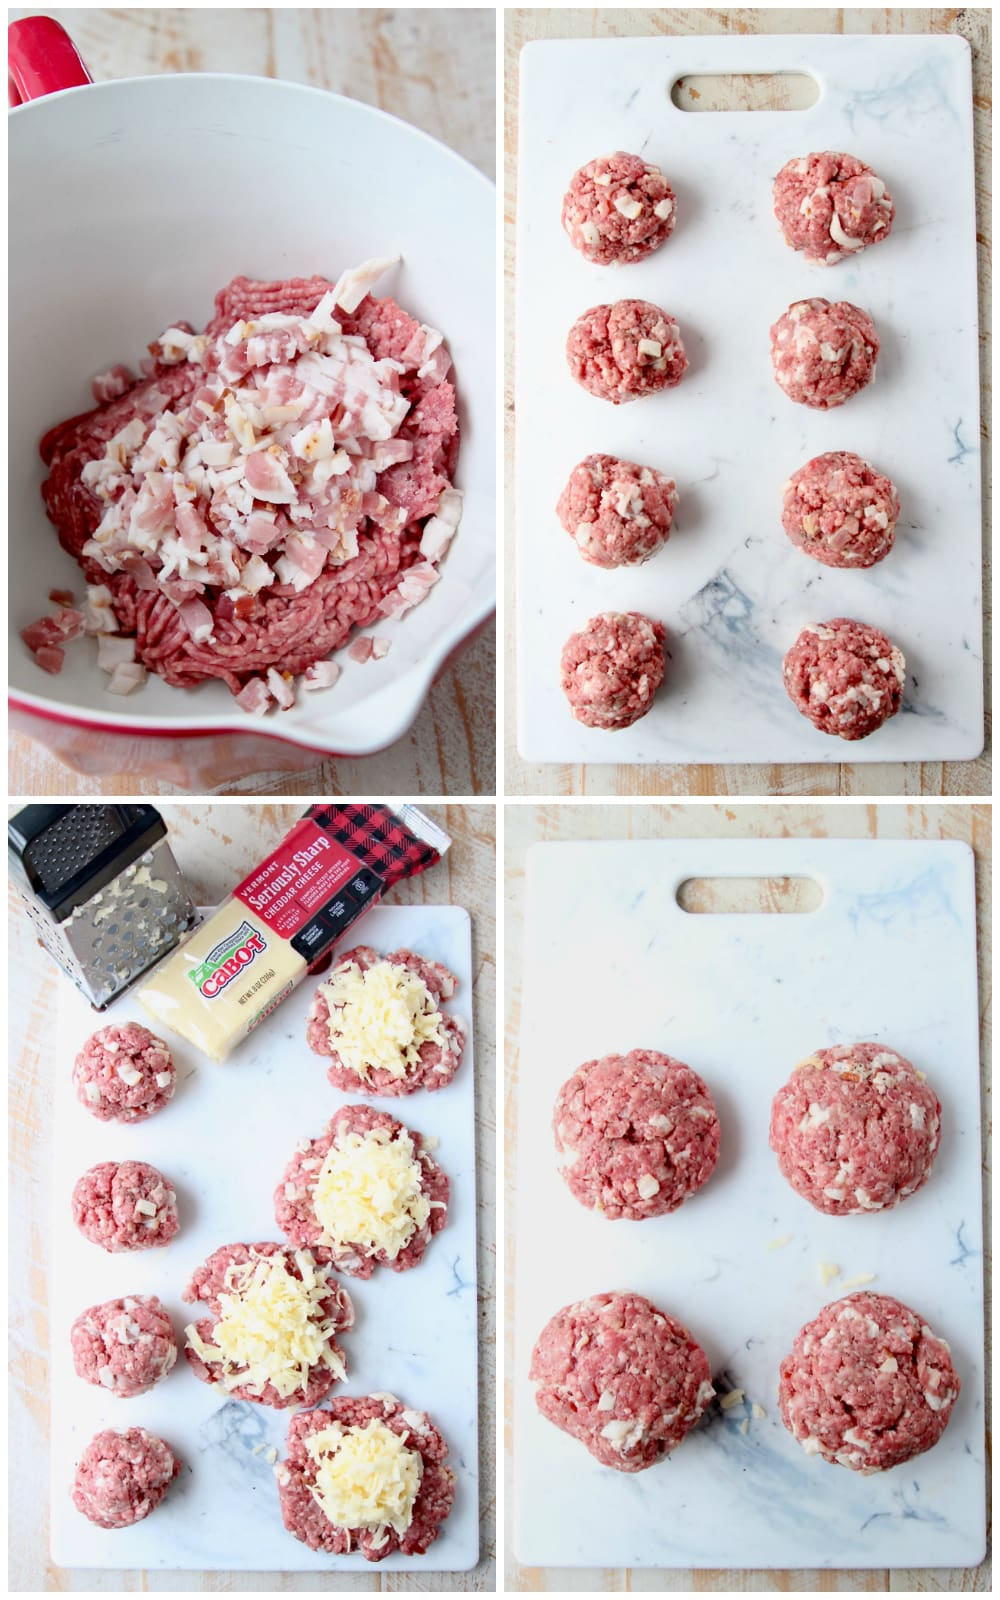 Juicy lucy burger instructional images collage